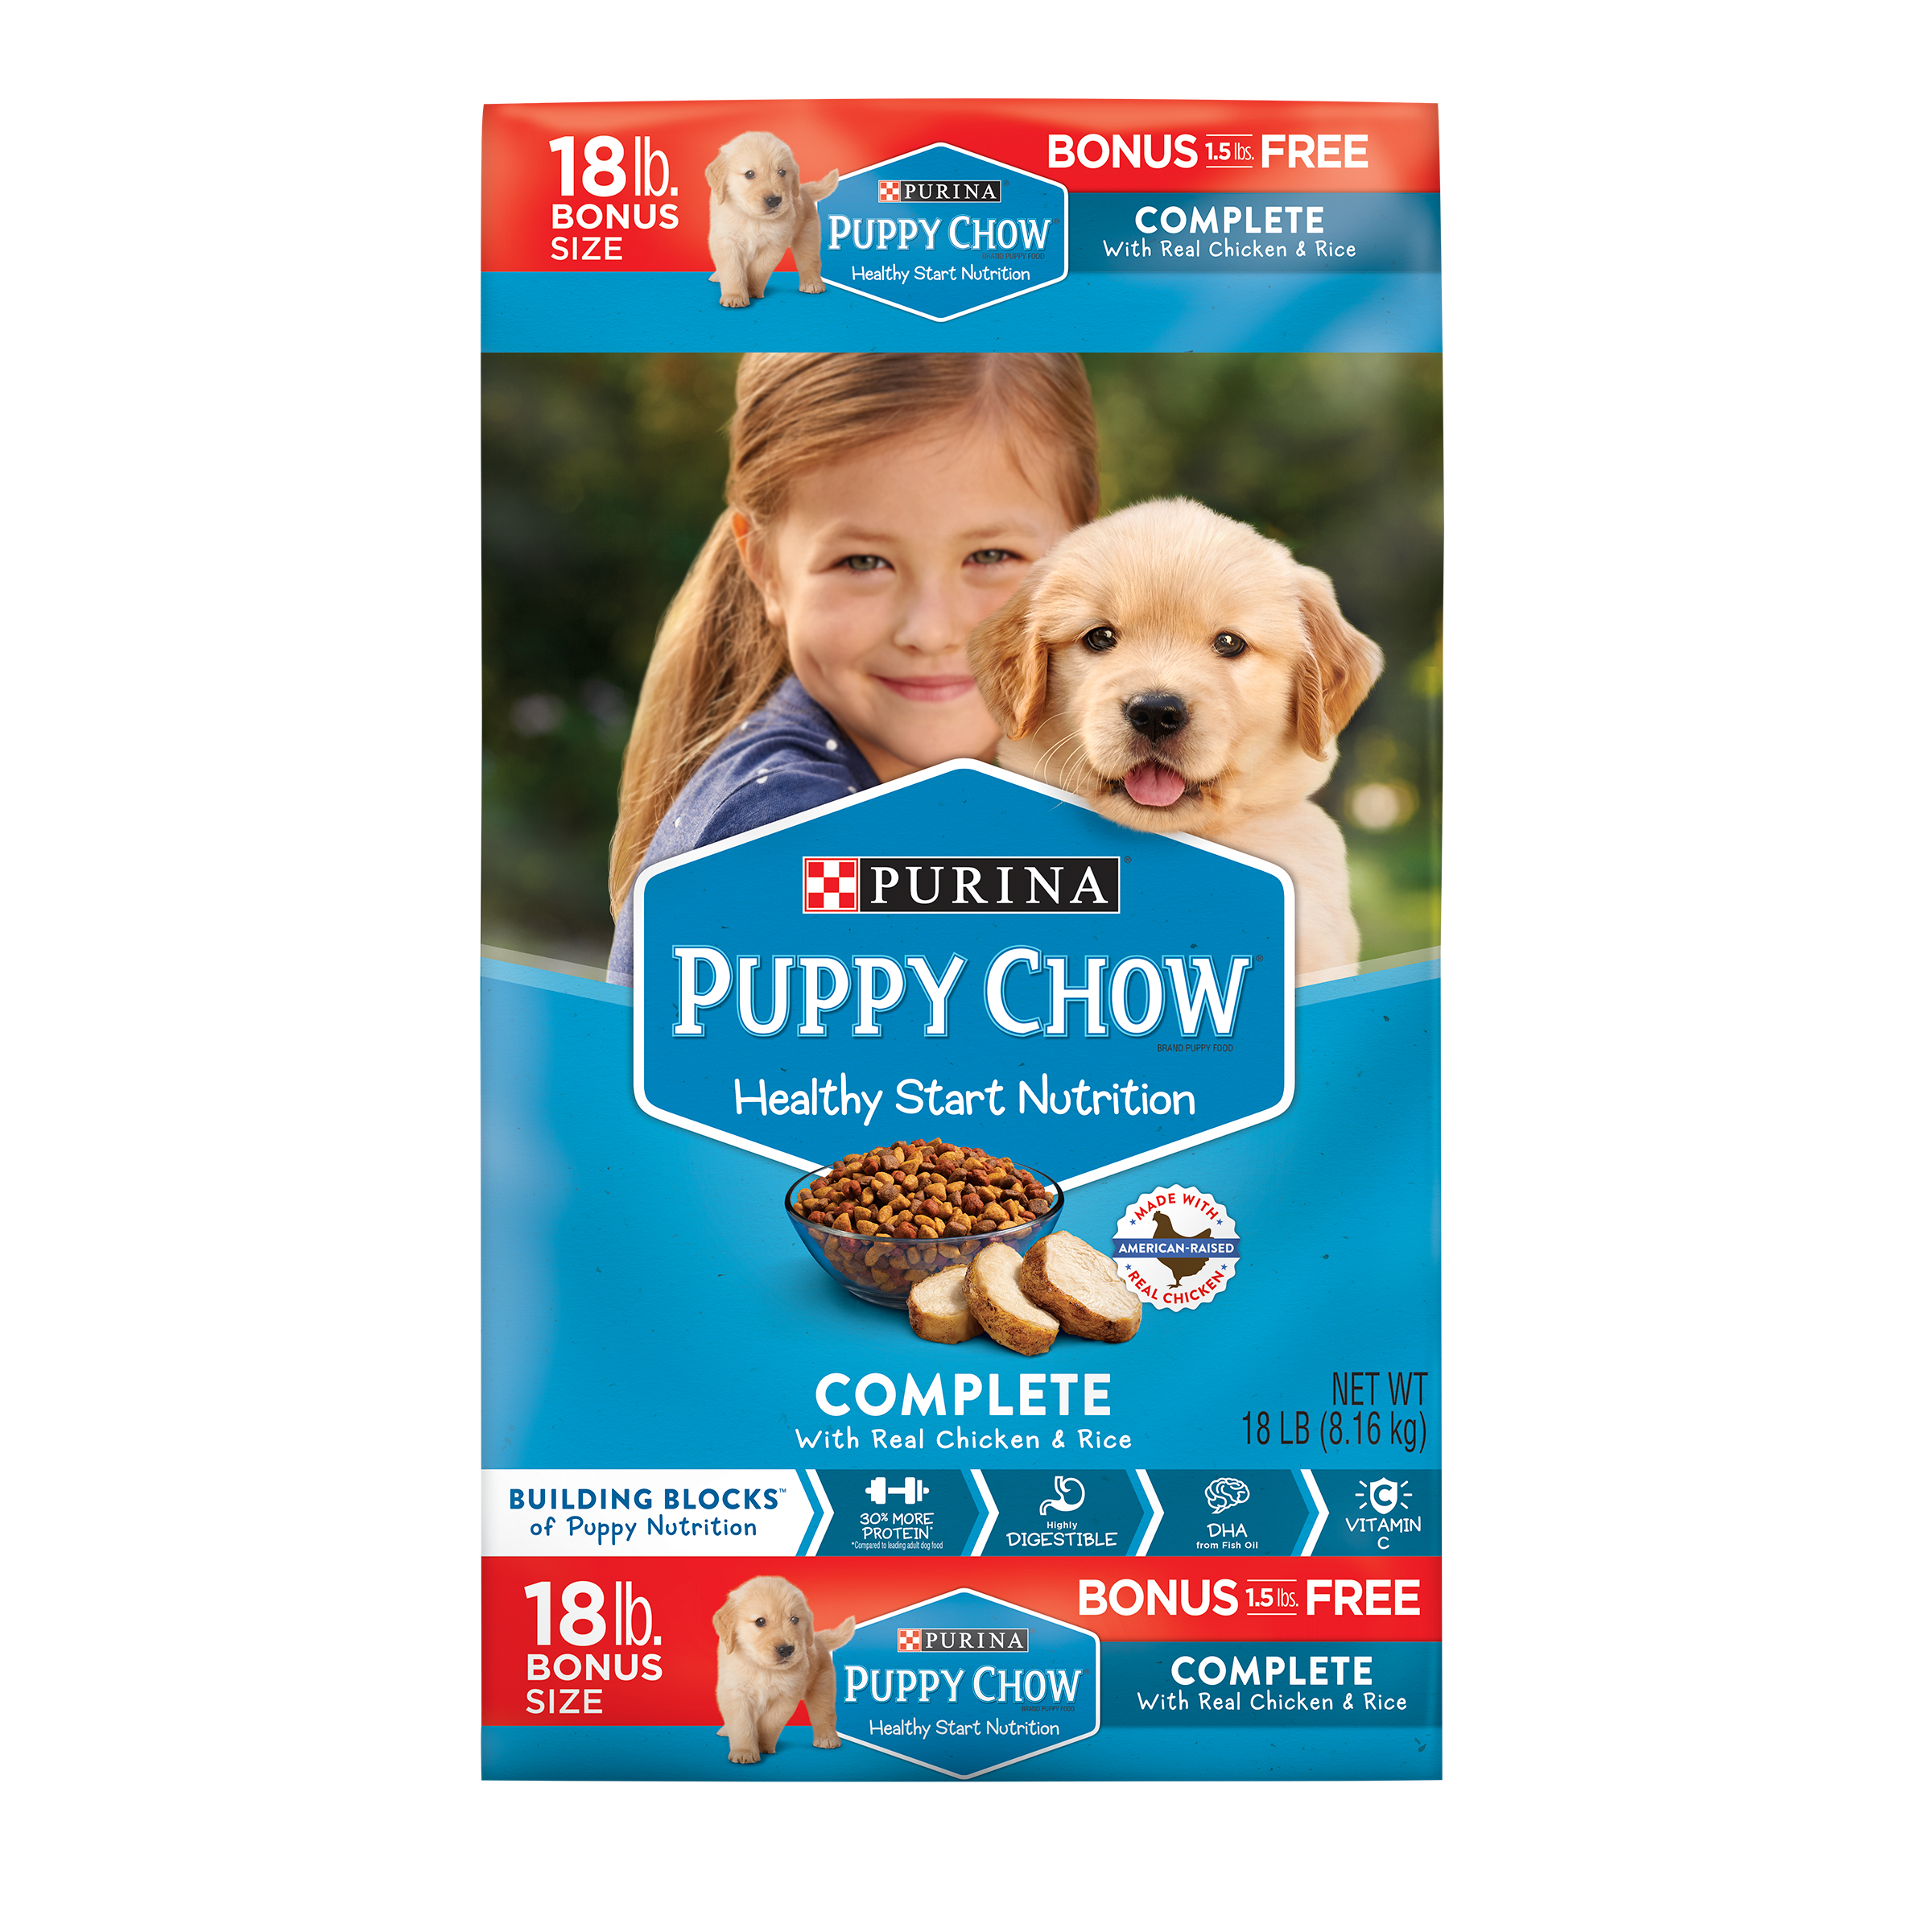 Purina Puppy Chow Complete With Real Chicken Dry Puppy Food - 18 lb. Bag